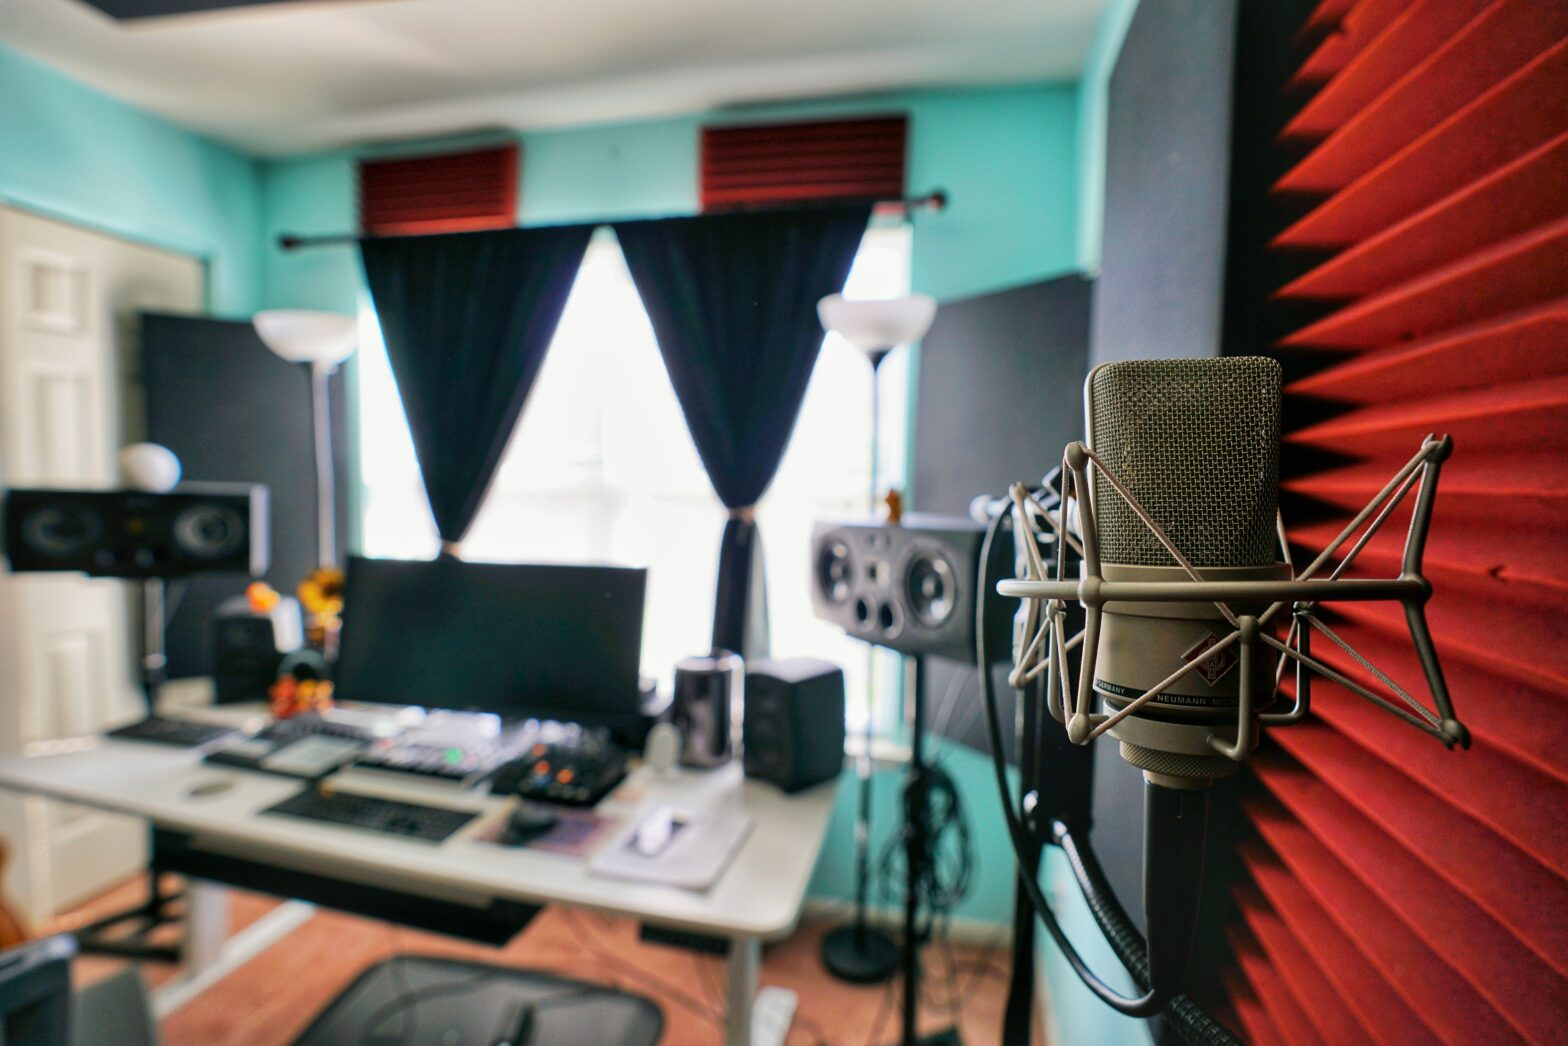 A home music recording studio is pictured, with microphones, a desktop computer, speakers, and soundproofing on the walls.